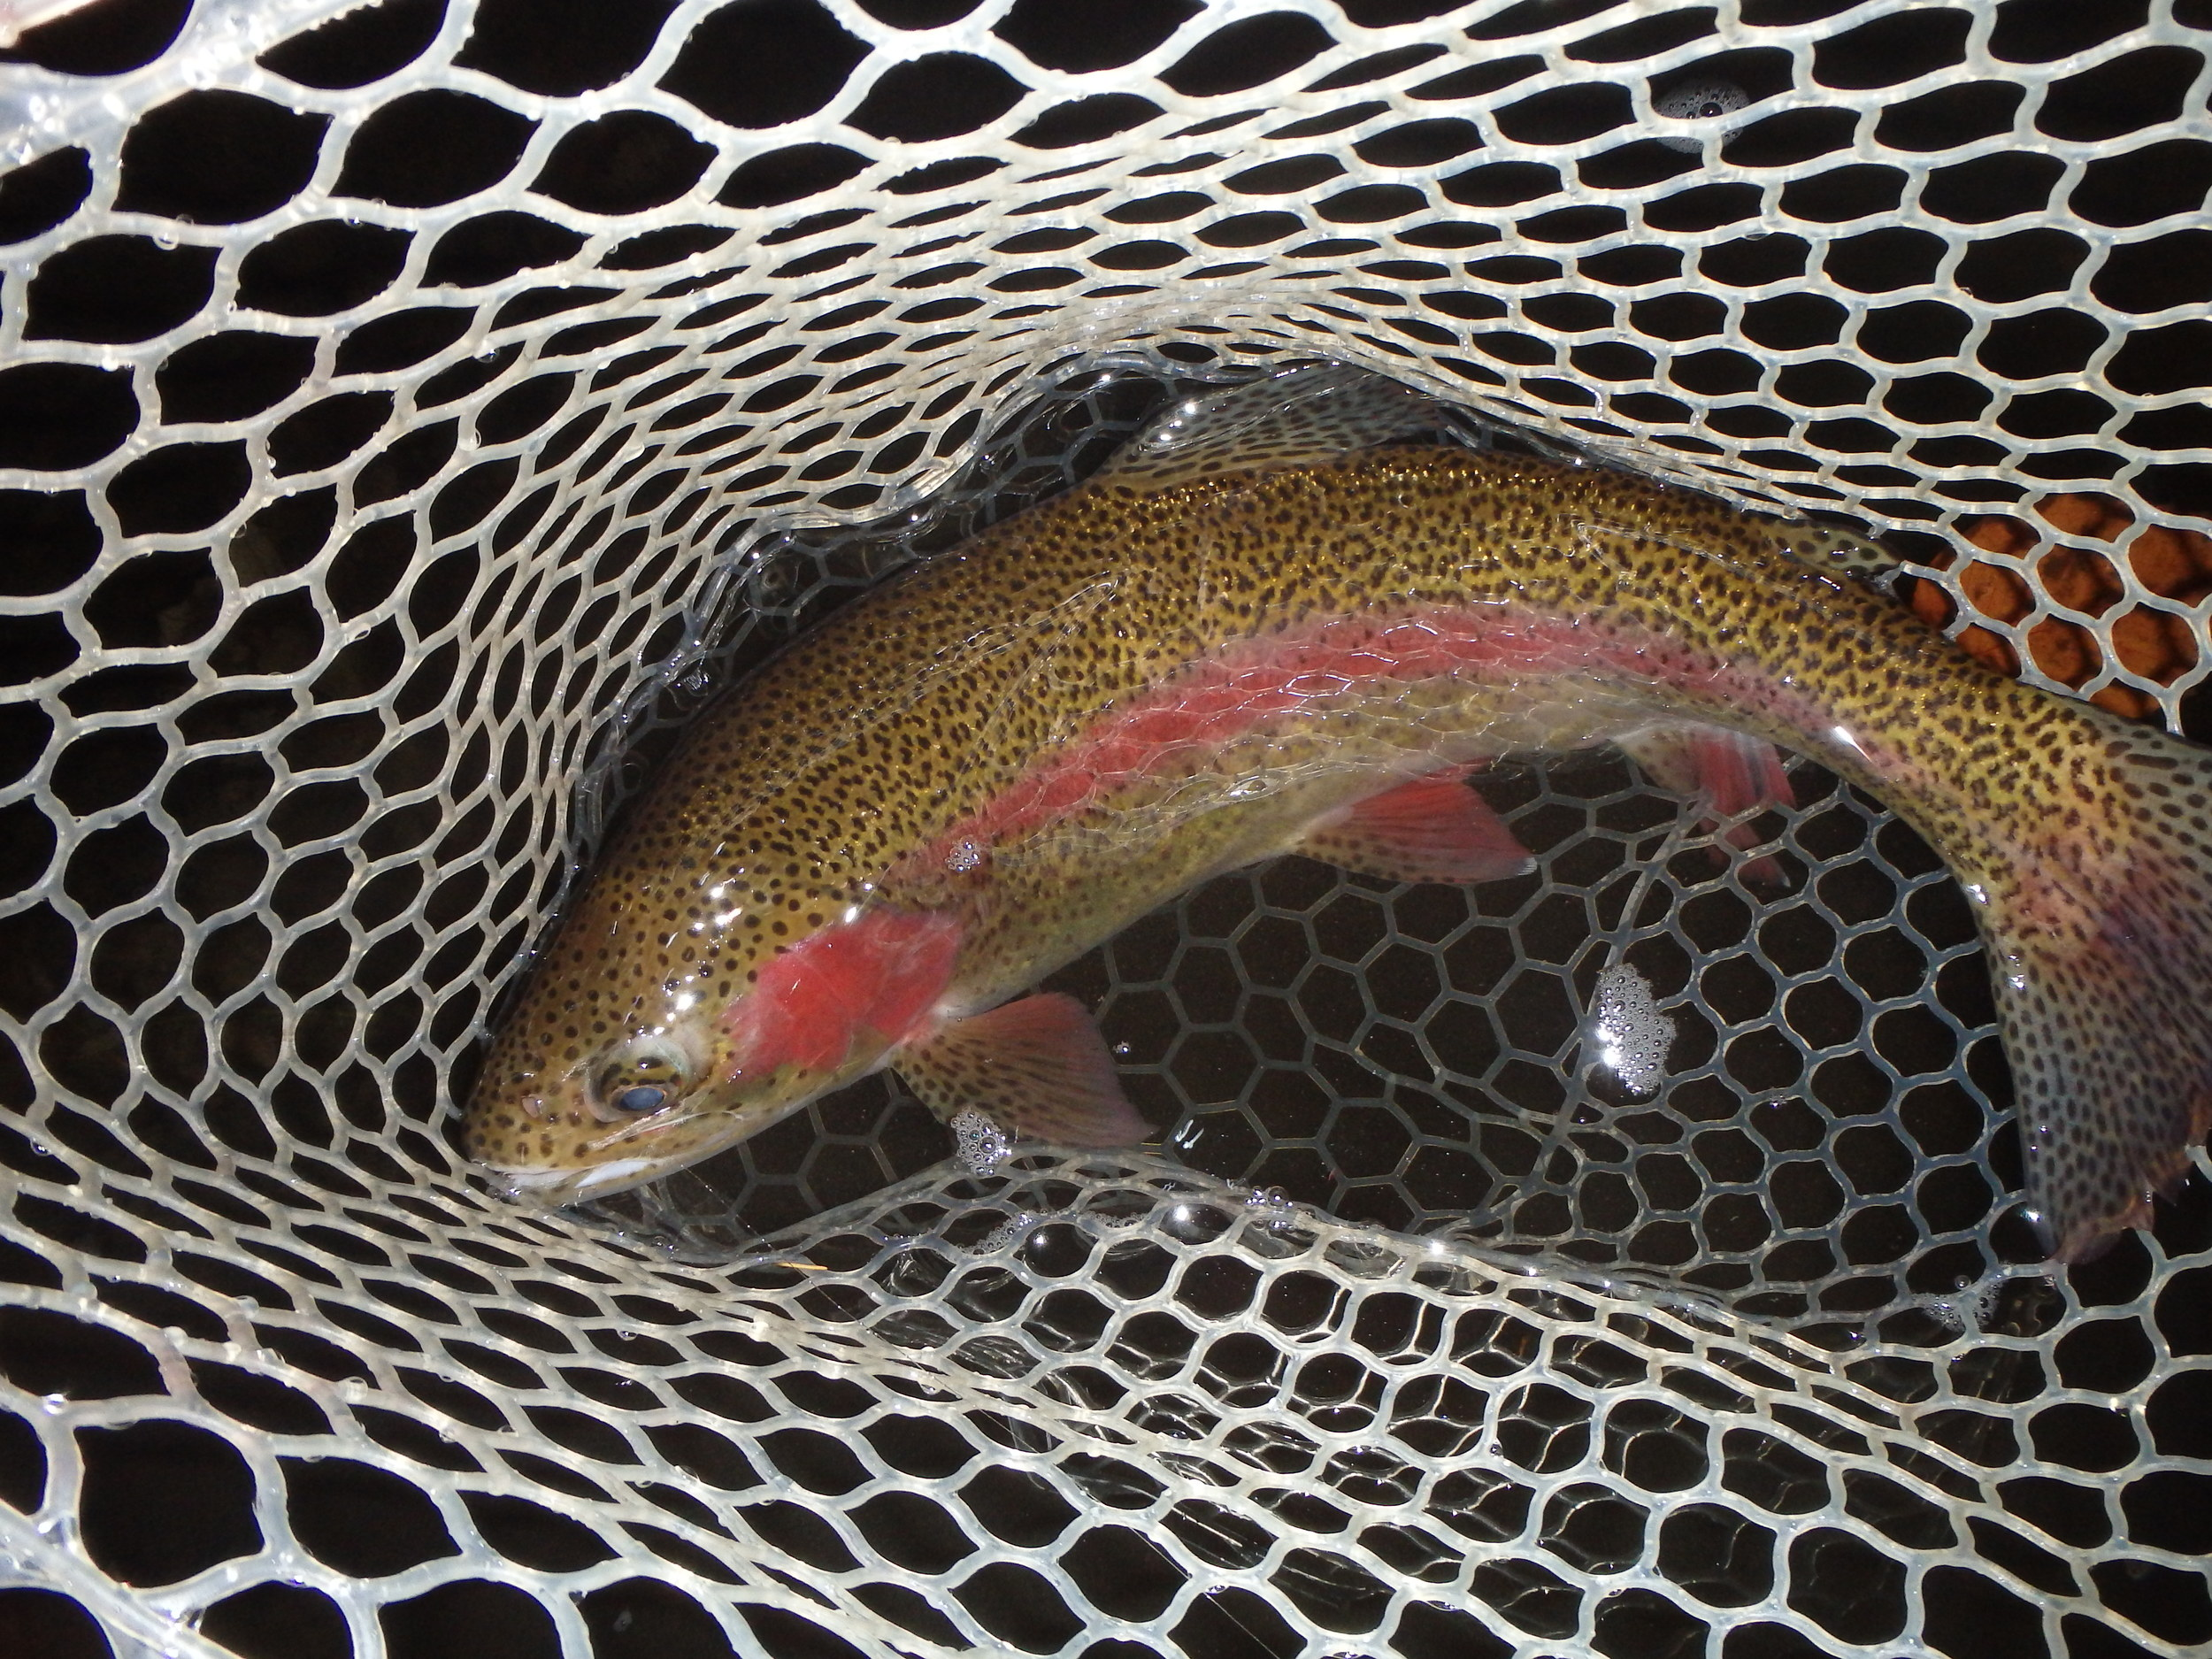 This Rainbow is a great example of our stocking program. She was most likely stocked last spring and measured between 12-14 inches. The full fins and vibrant colors tell the story; she took a small egg pattern on my first cast and measured an honest 20 inches. So now you know why I climb over snow drifts to feed our fish – the rewards are there.